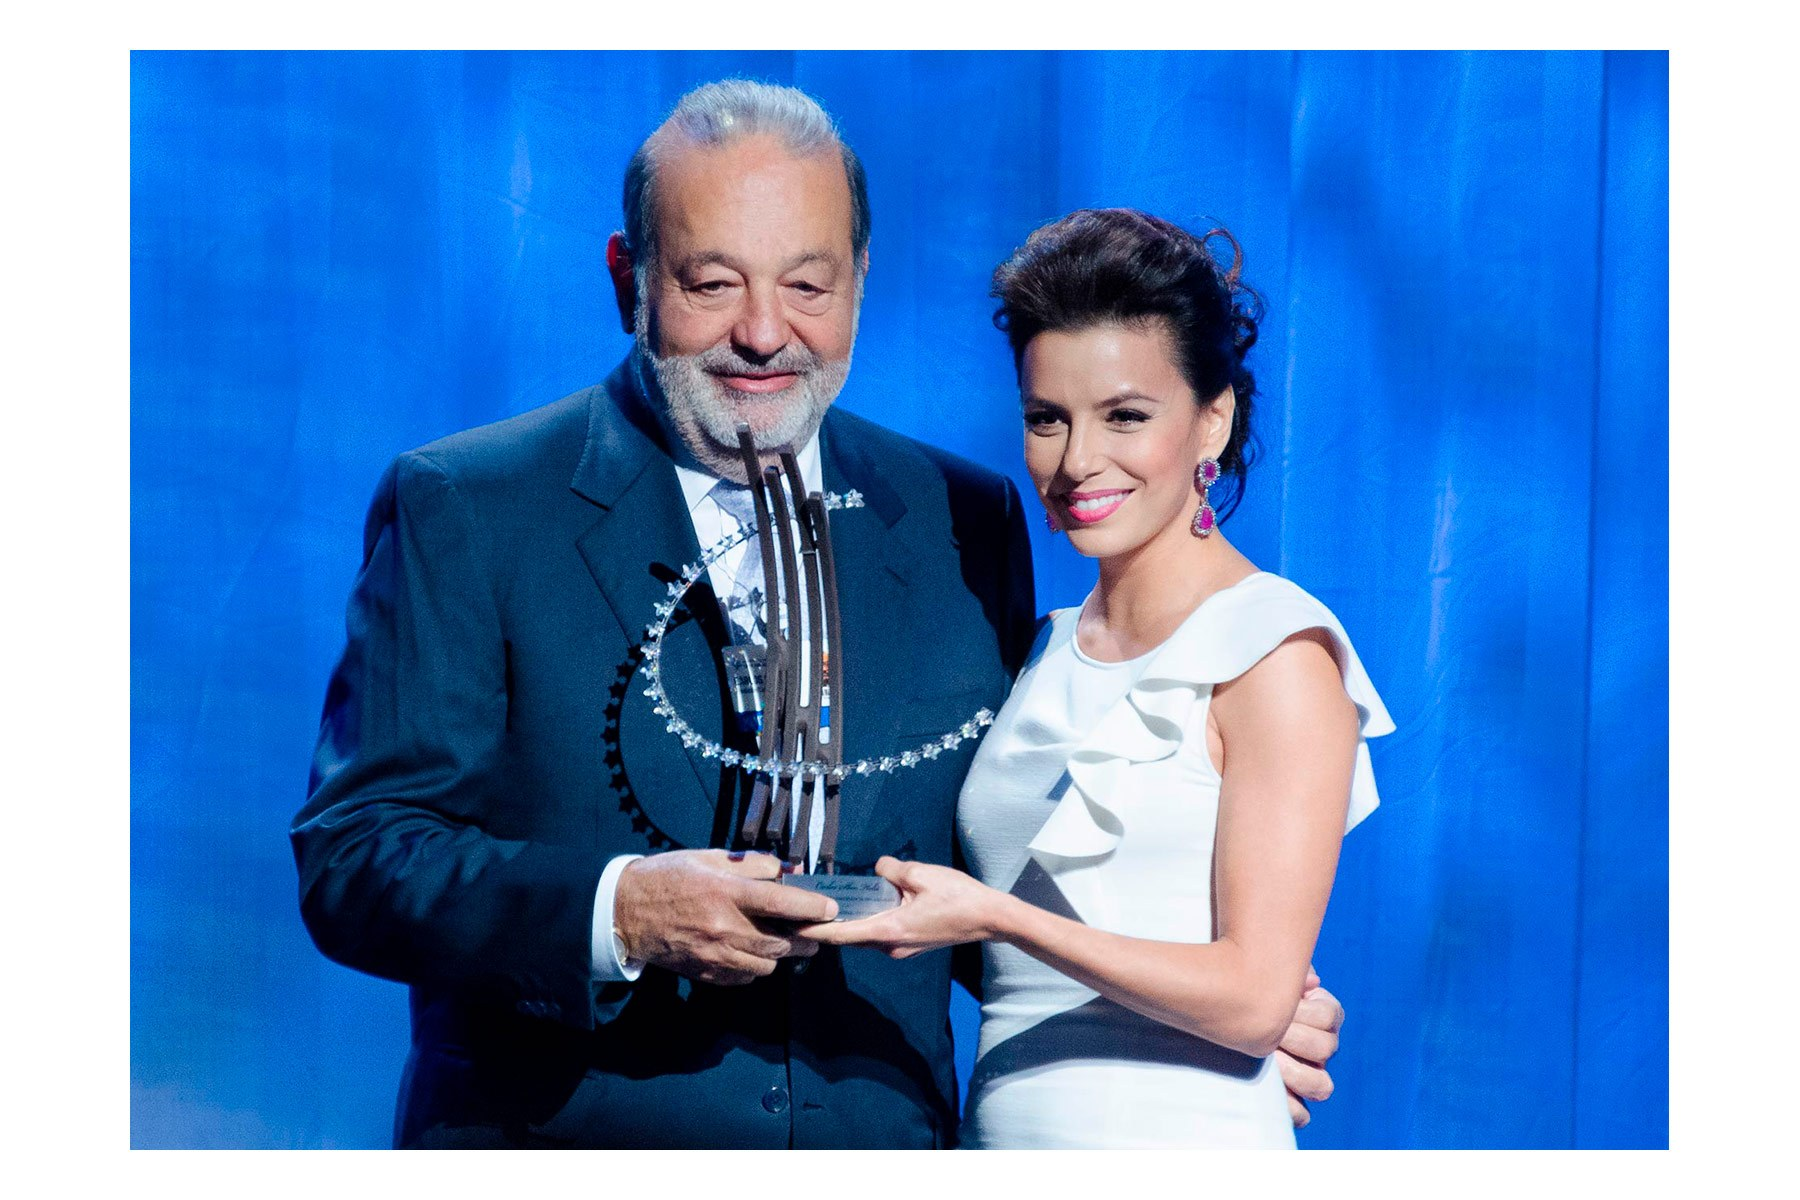 Eva Longoria, Carlos Slim Helú,  Global Citzen Awards, Clinton Global Initiative, CGI 2012 meetings, Designing for Impact, New York, September 2012